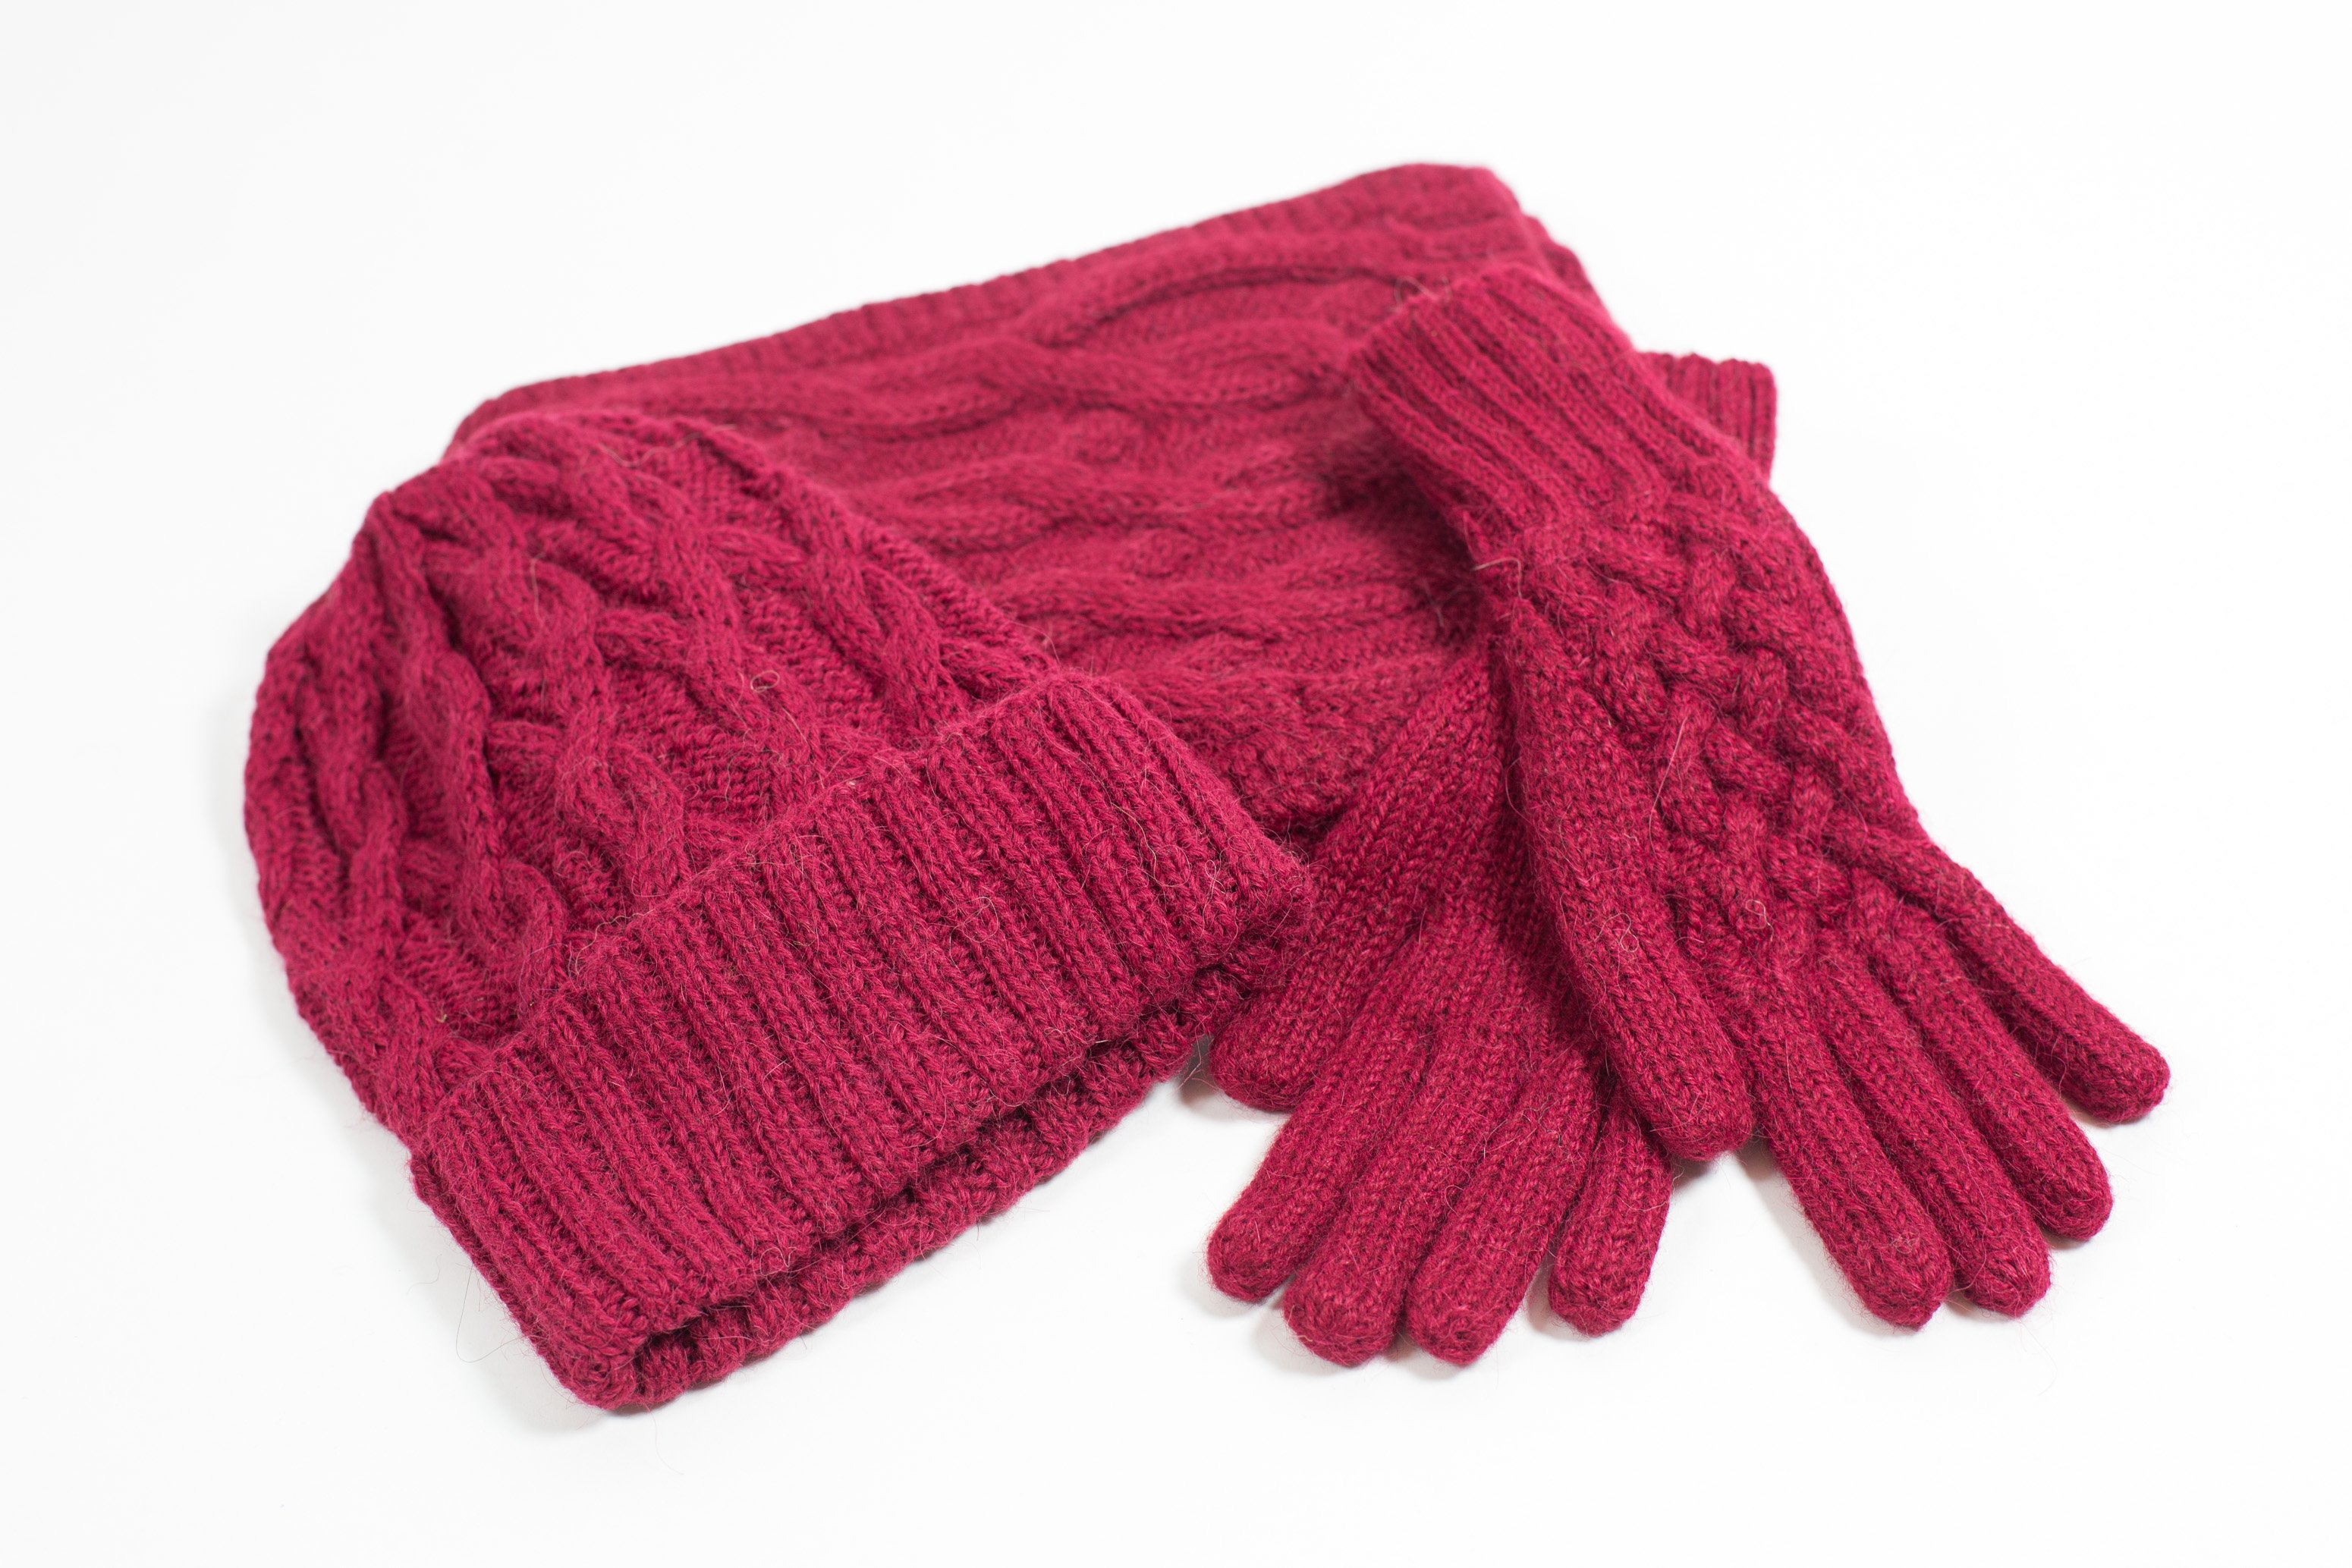 Knitted Sets Including Hat Scarf Fingerless Mittens And Gloves In Alpaca